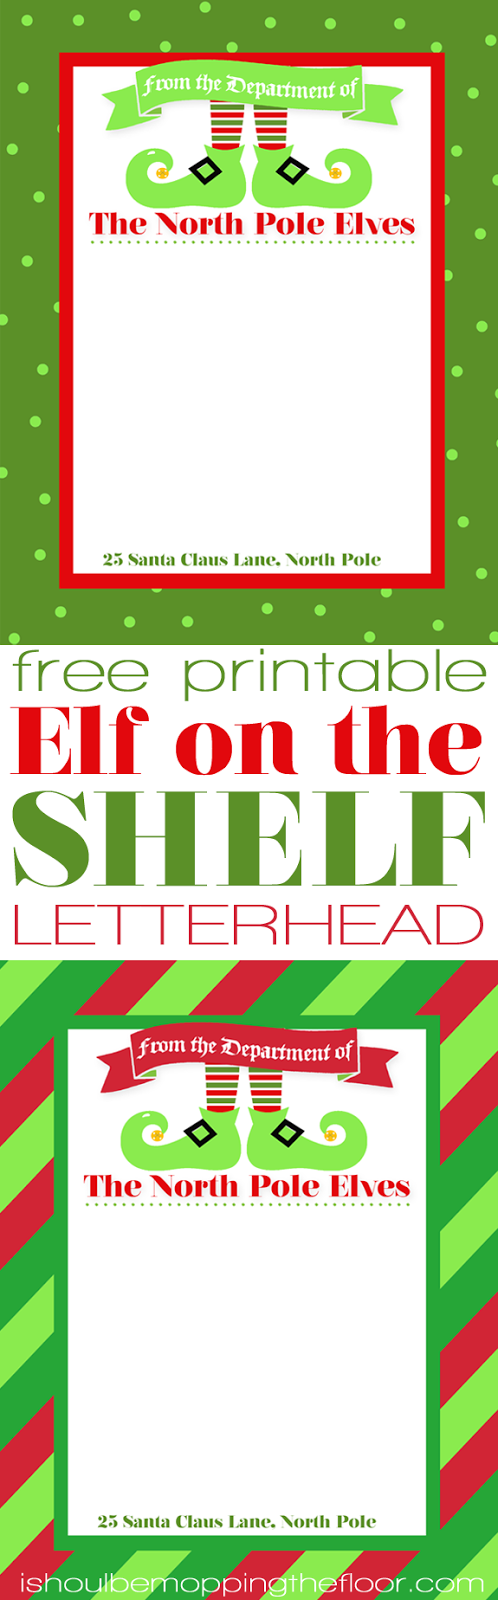 Adorable image for free printable elf on the shelf letter